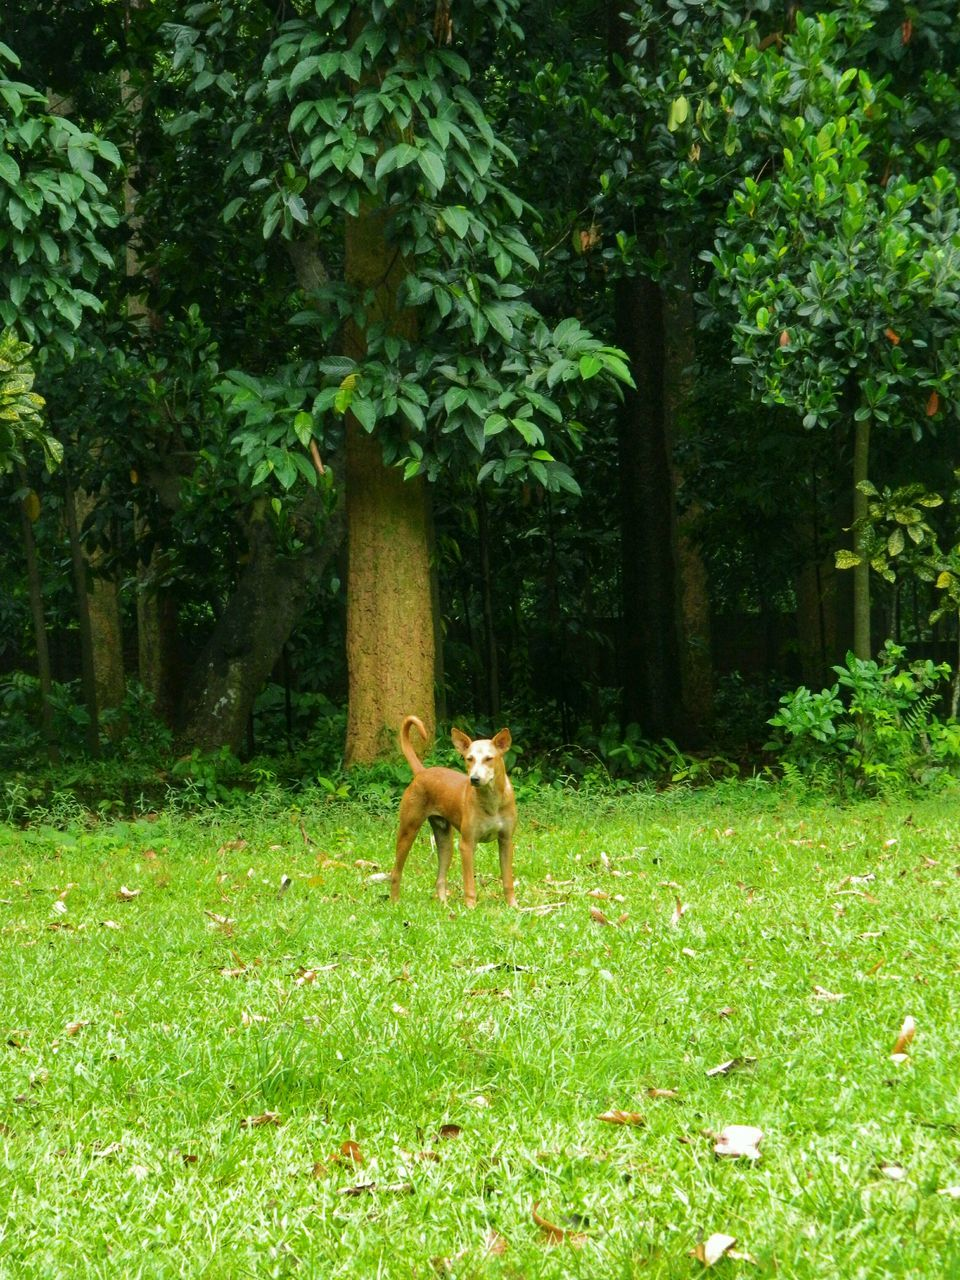 Dog Standing In Grassy Field Against Trees